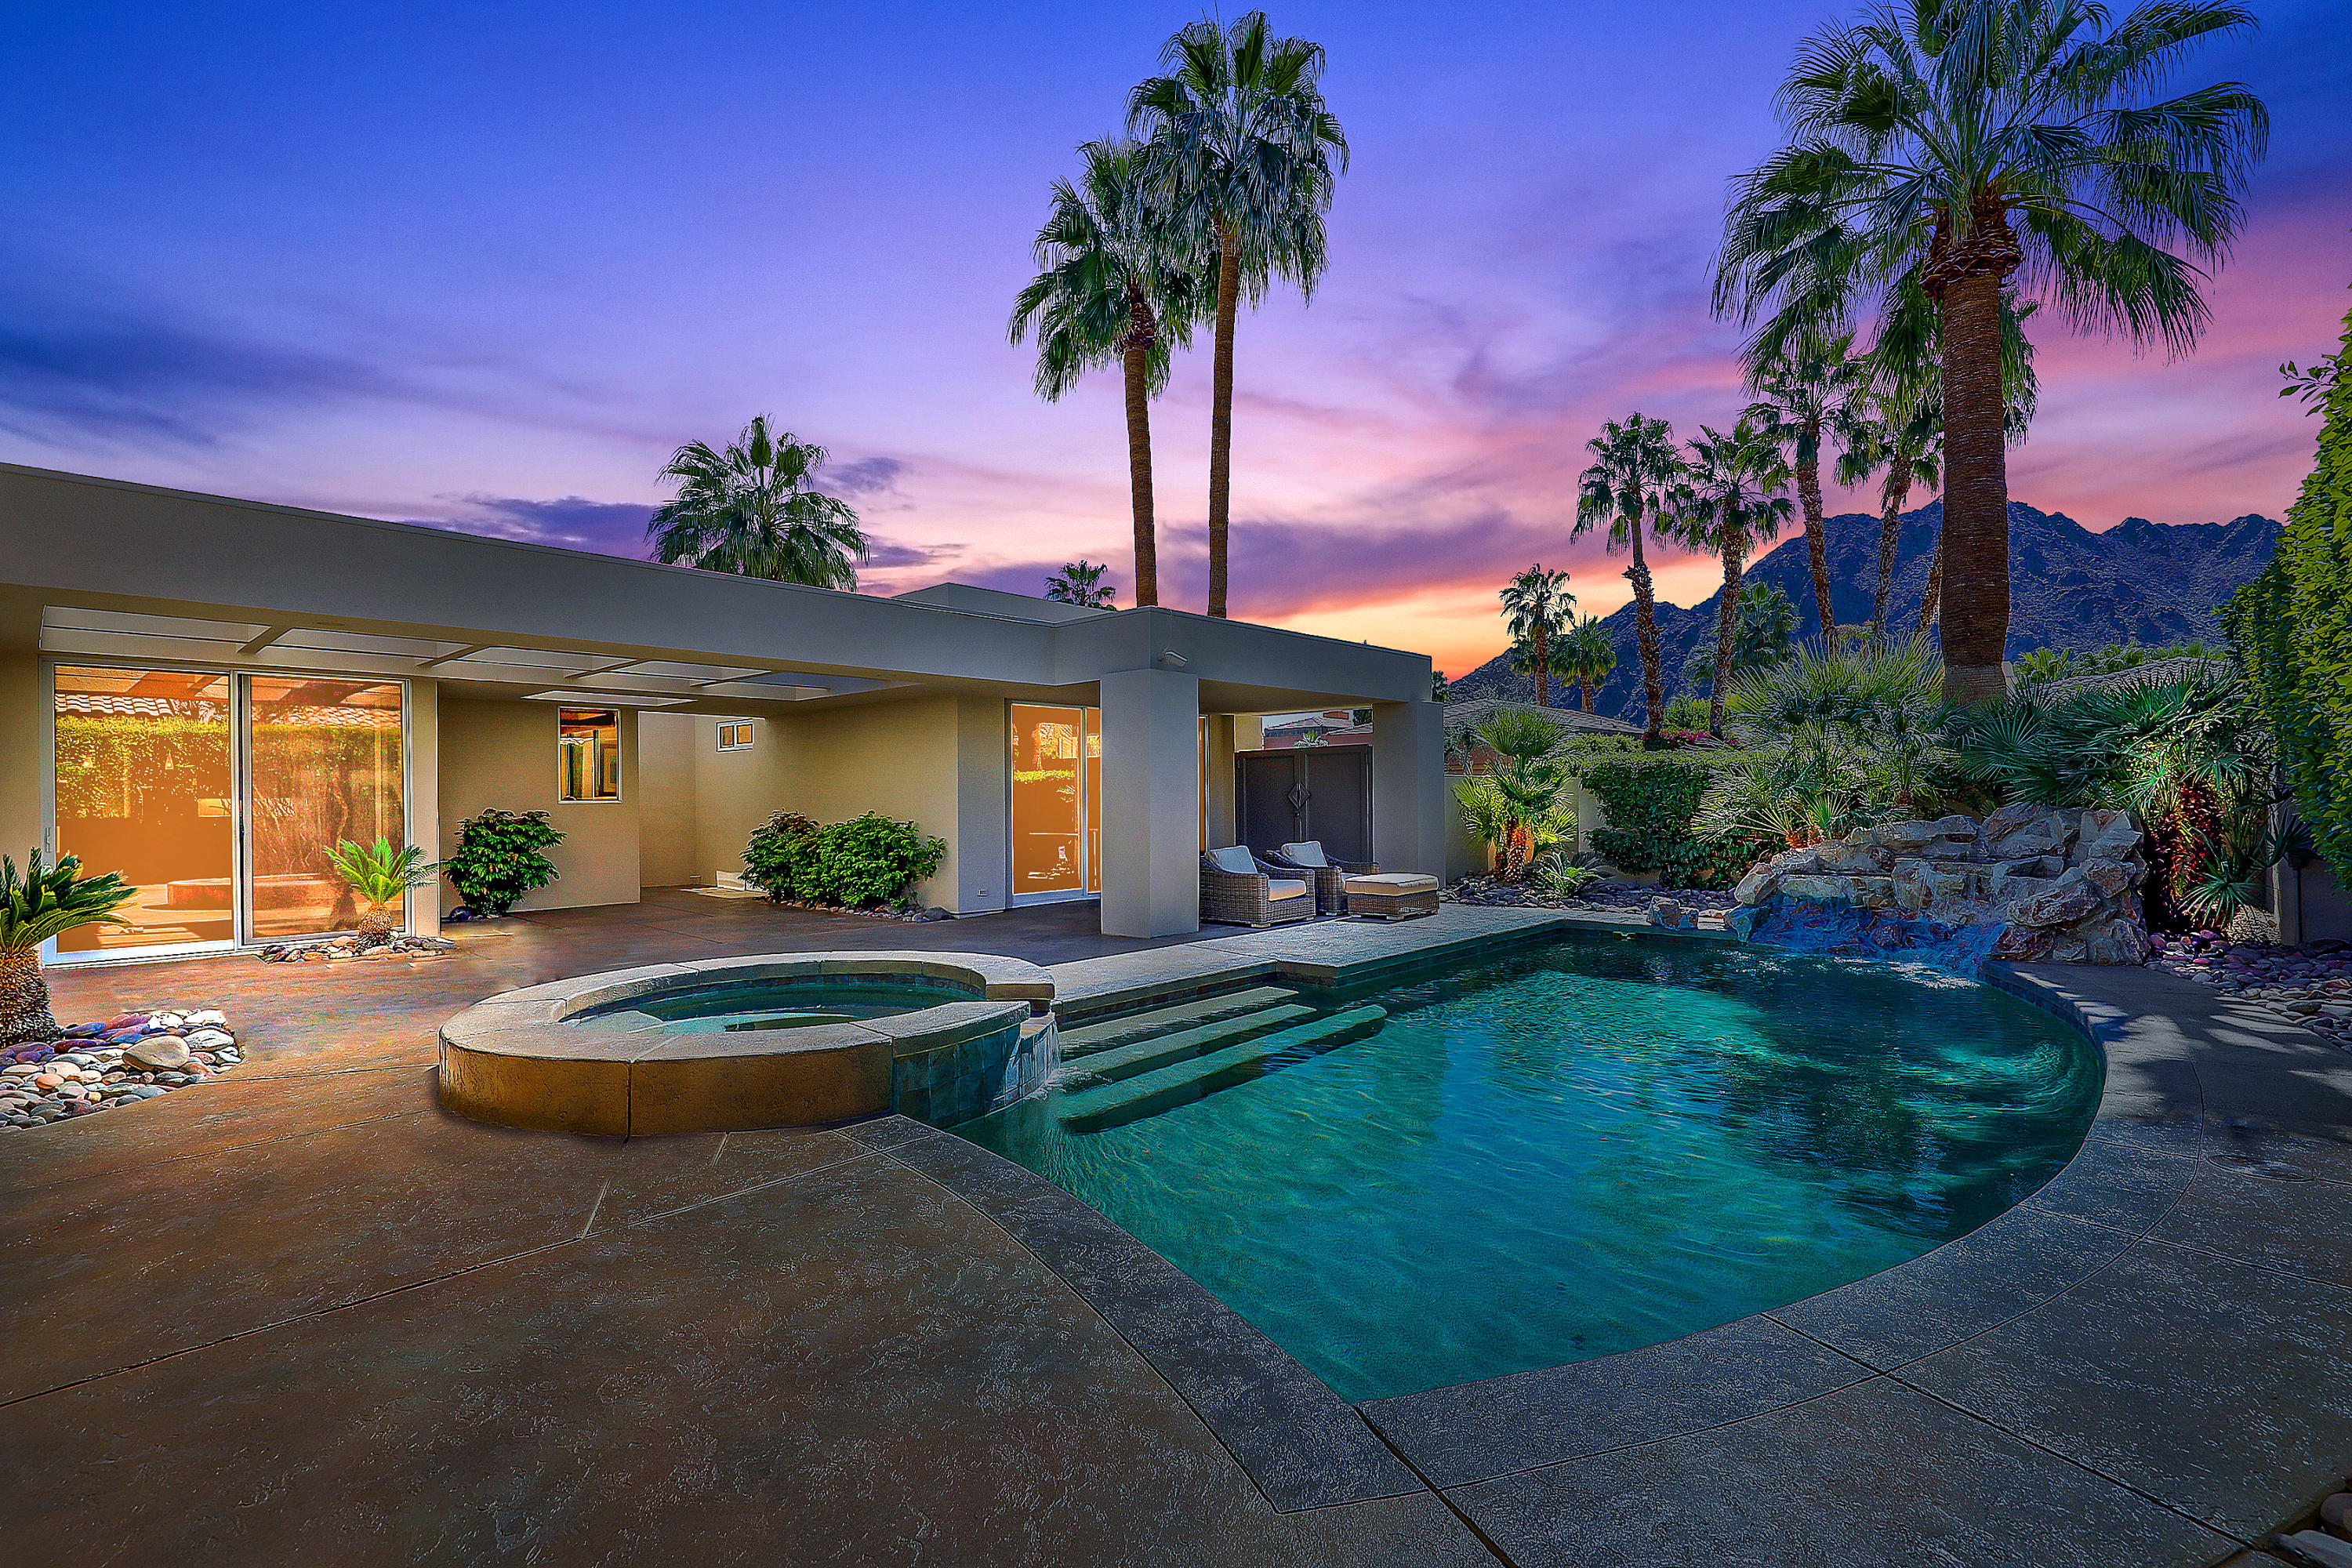 Beautiful Modern, Contemporary semi-Custom Ministrelli home located within prestigious Painted Cove community at Indian Wells Country Club.  Outstanding south facing mountain views, large private Courtyard with pebble tech pool, spa, and waterfall! Beautiful back lawn and patio. Open Floor plan offers 3770 Sq. Ft., 4 bed, 4.5 bath, 2 cars + golf cart garage, includes spacious Guest Casita and picturesque views. Travertine floors throughout with rich wood plank porcelain floors in Living Room, Master Bedroom, and Casita. Glass French doors open into Living Room with cathedral ceilings, modern fireplace, and formal Dining area with gorgeous chandelier. Newly remodeled Gourmet Kitchen has white quartz countertops, kitchen island with storage, two stainless sinks, bar seating, informal dining area and cozy patio.  Family Room adjoins with built in media center. Separate Master Bedroom Suite with outstanding south views and glass sliders access to lush pool/spa and patio.  Spacious Master Bath has new stand-alone tub, his/her vanities and walk-in closets.  Guest Bedrooms are carpeted with en-suite Baths and private patios. Private entry Guest Casita has full bath, walk-in closet, custom built-ins, perfect for home office. Large Laundry Room with lots of cabinetry, deep tub sink, stainless washer/dryer.